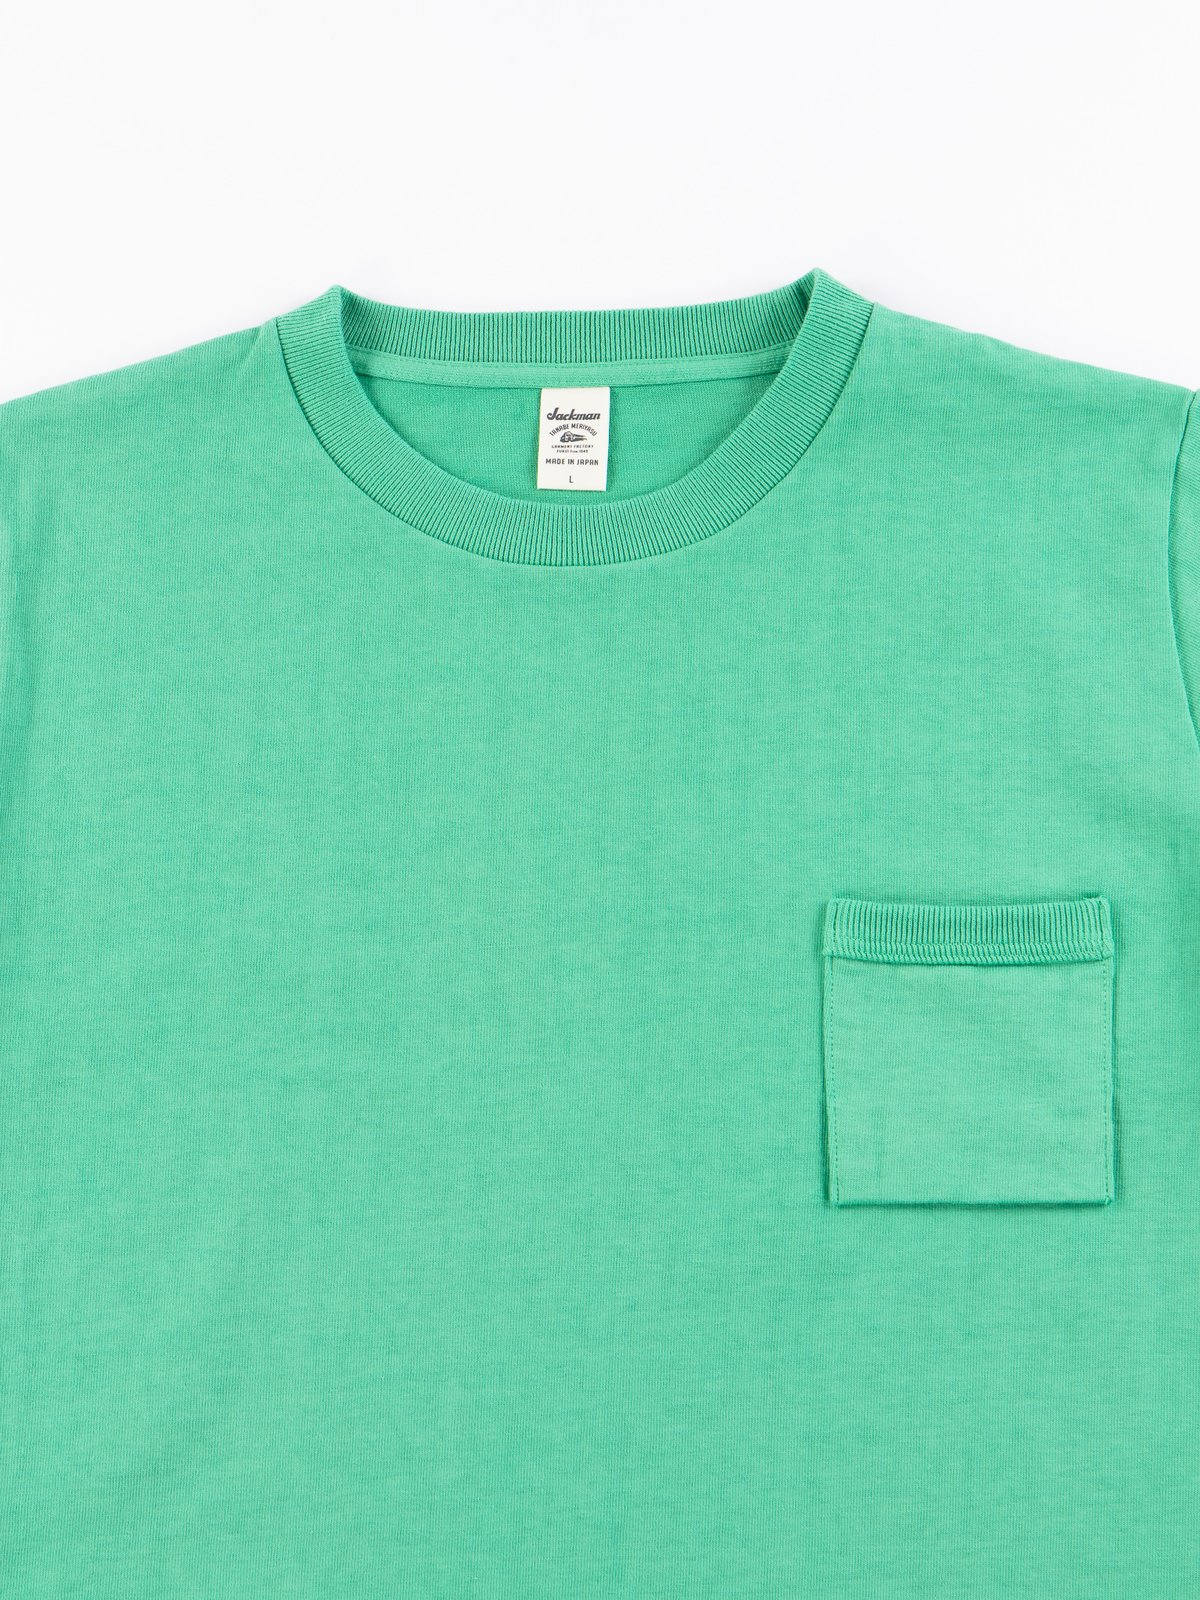 Kelly Green Dotsume Pocket T–Shirt - Image 3